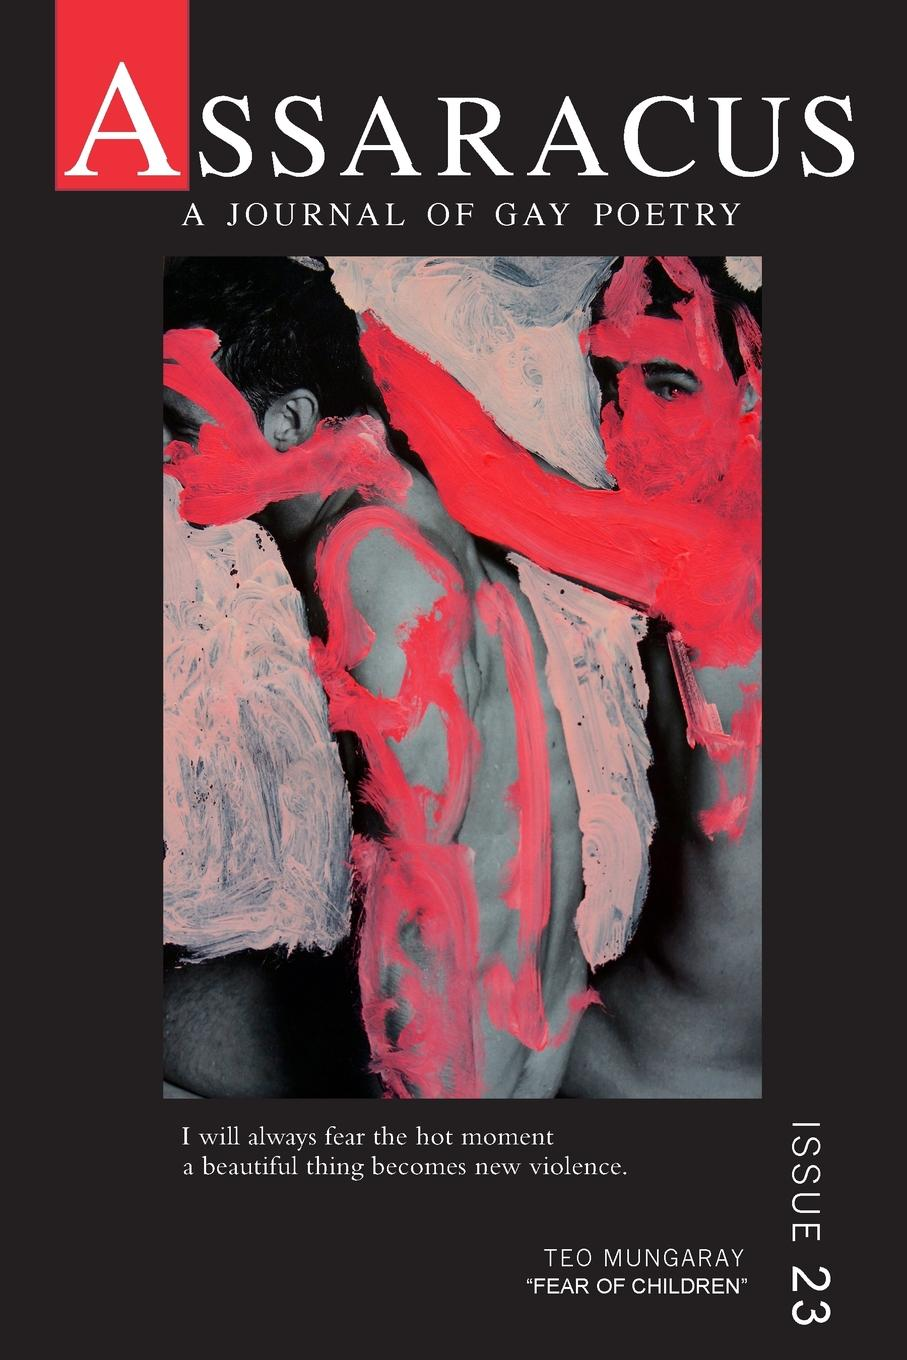 Image of Assaracus Issue 23: A Journal of Gay Poetry (Brusa, Guzmán, Mungaray)